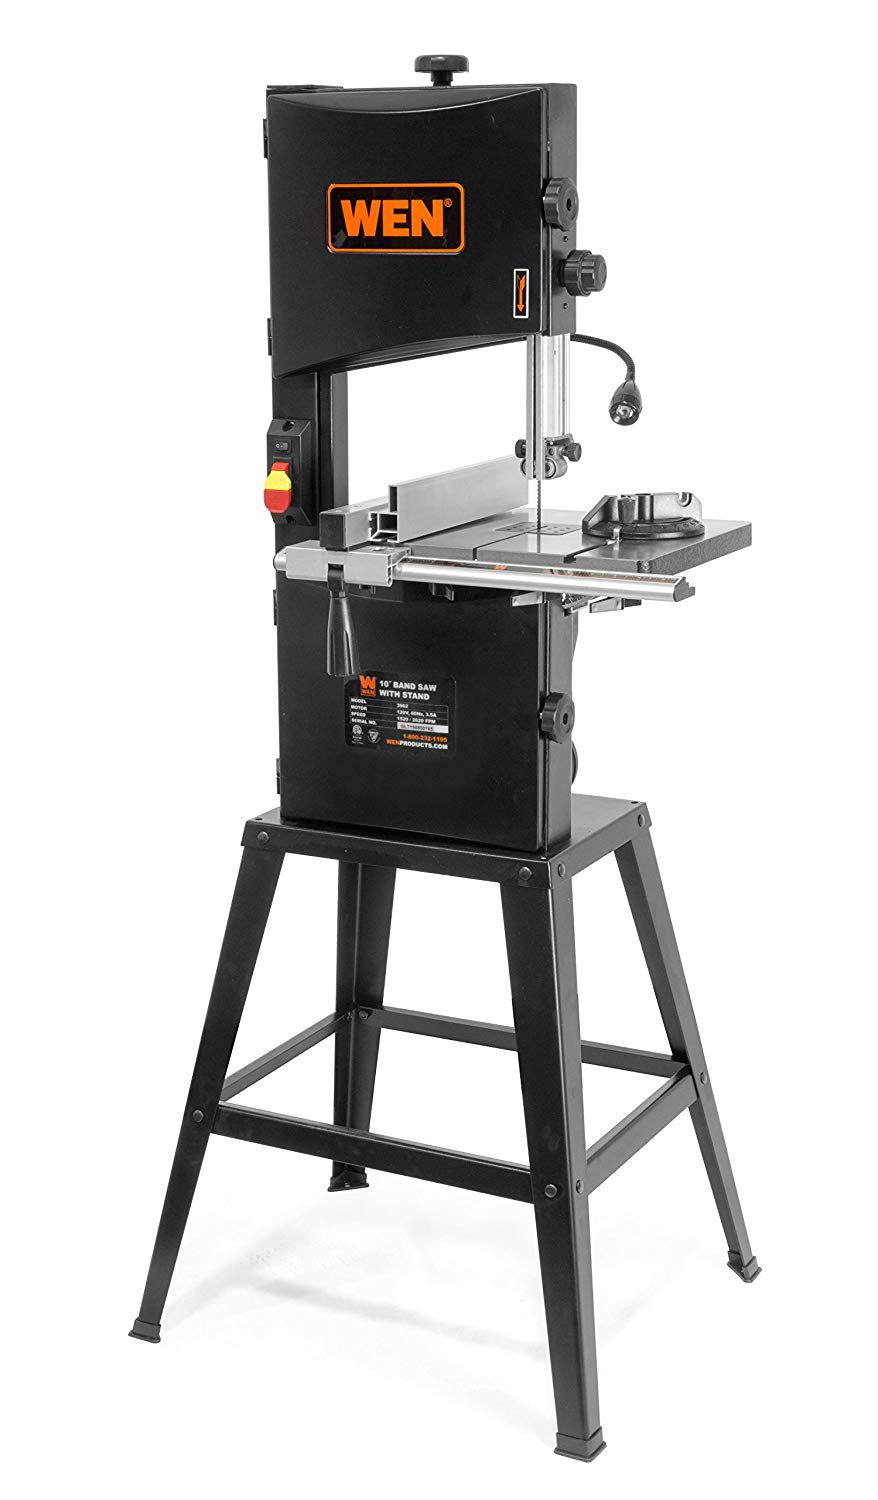 WEN 3962 Two-Speed Bandsaw